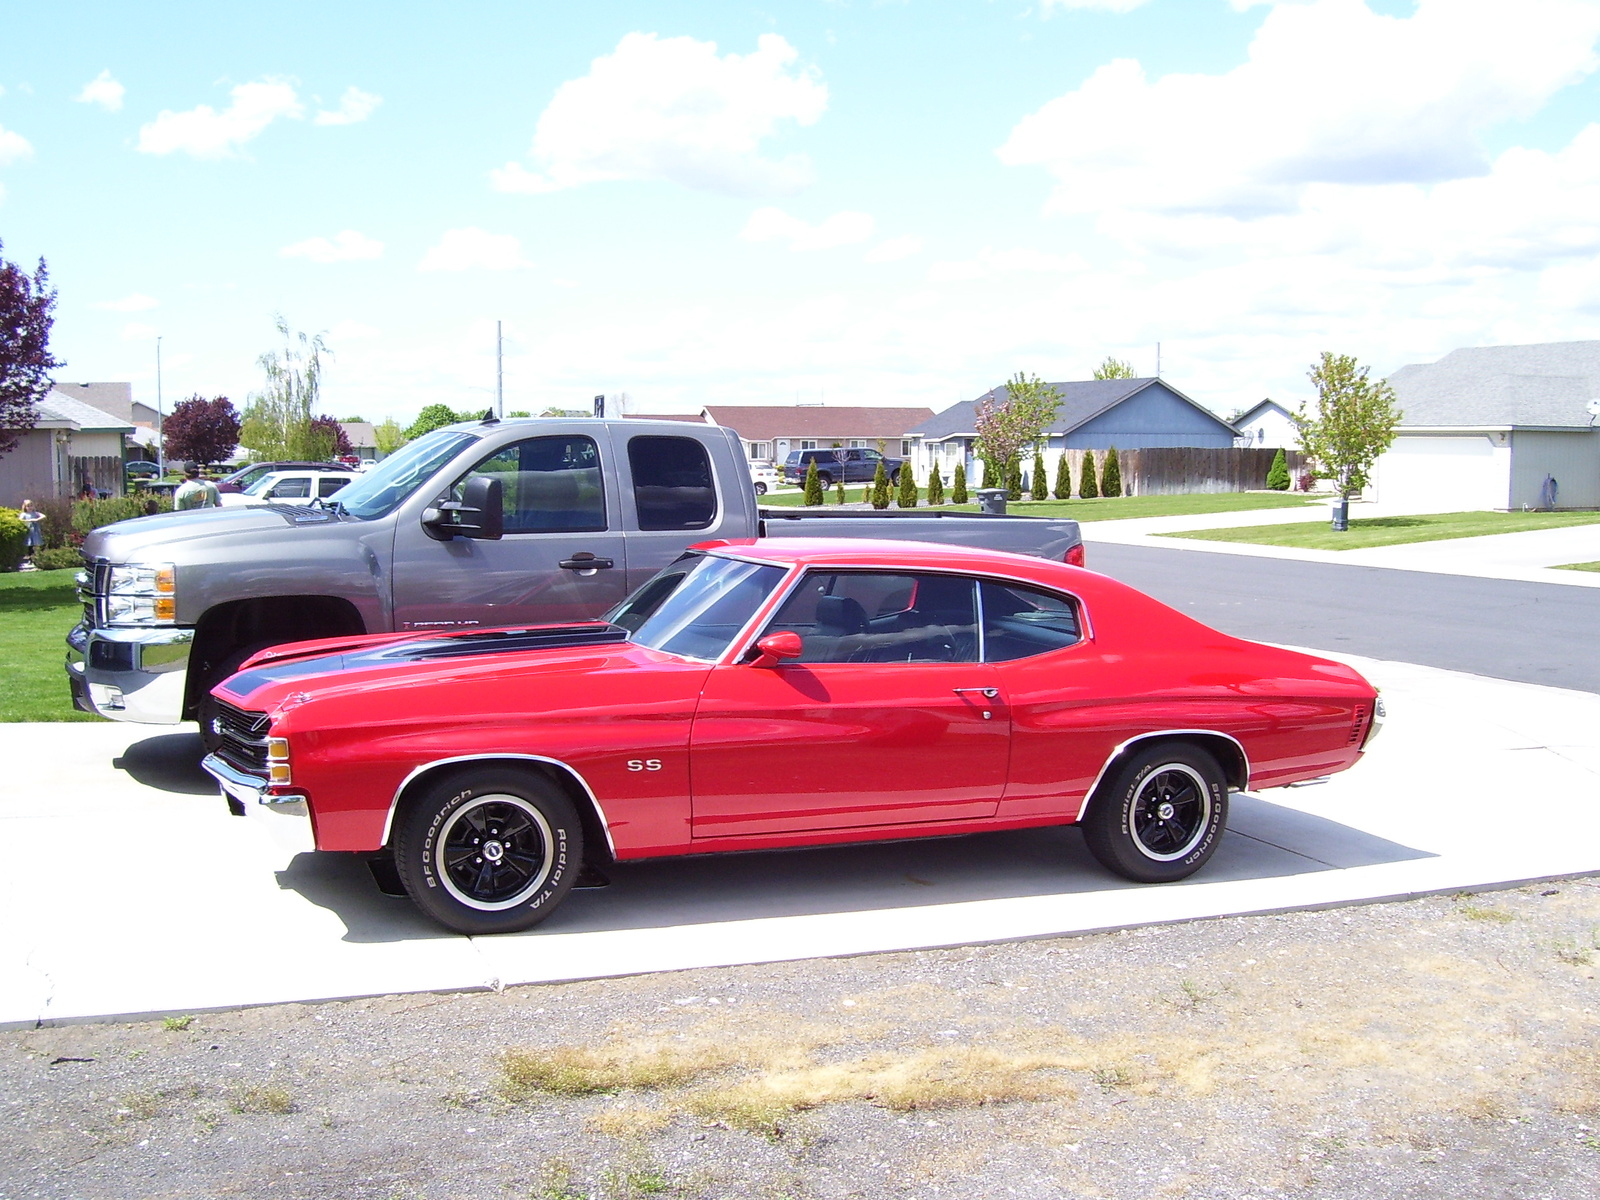 Chevelle Ss >> Chevrolet Chevelle Questions - Value of my 1971 SS Chevelle w/350 - CarGurus